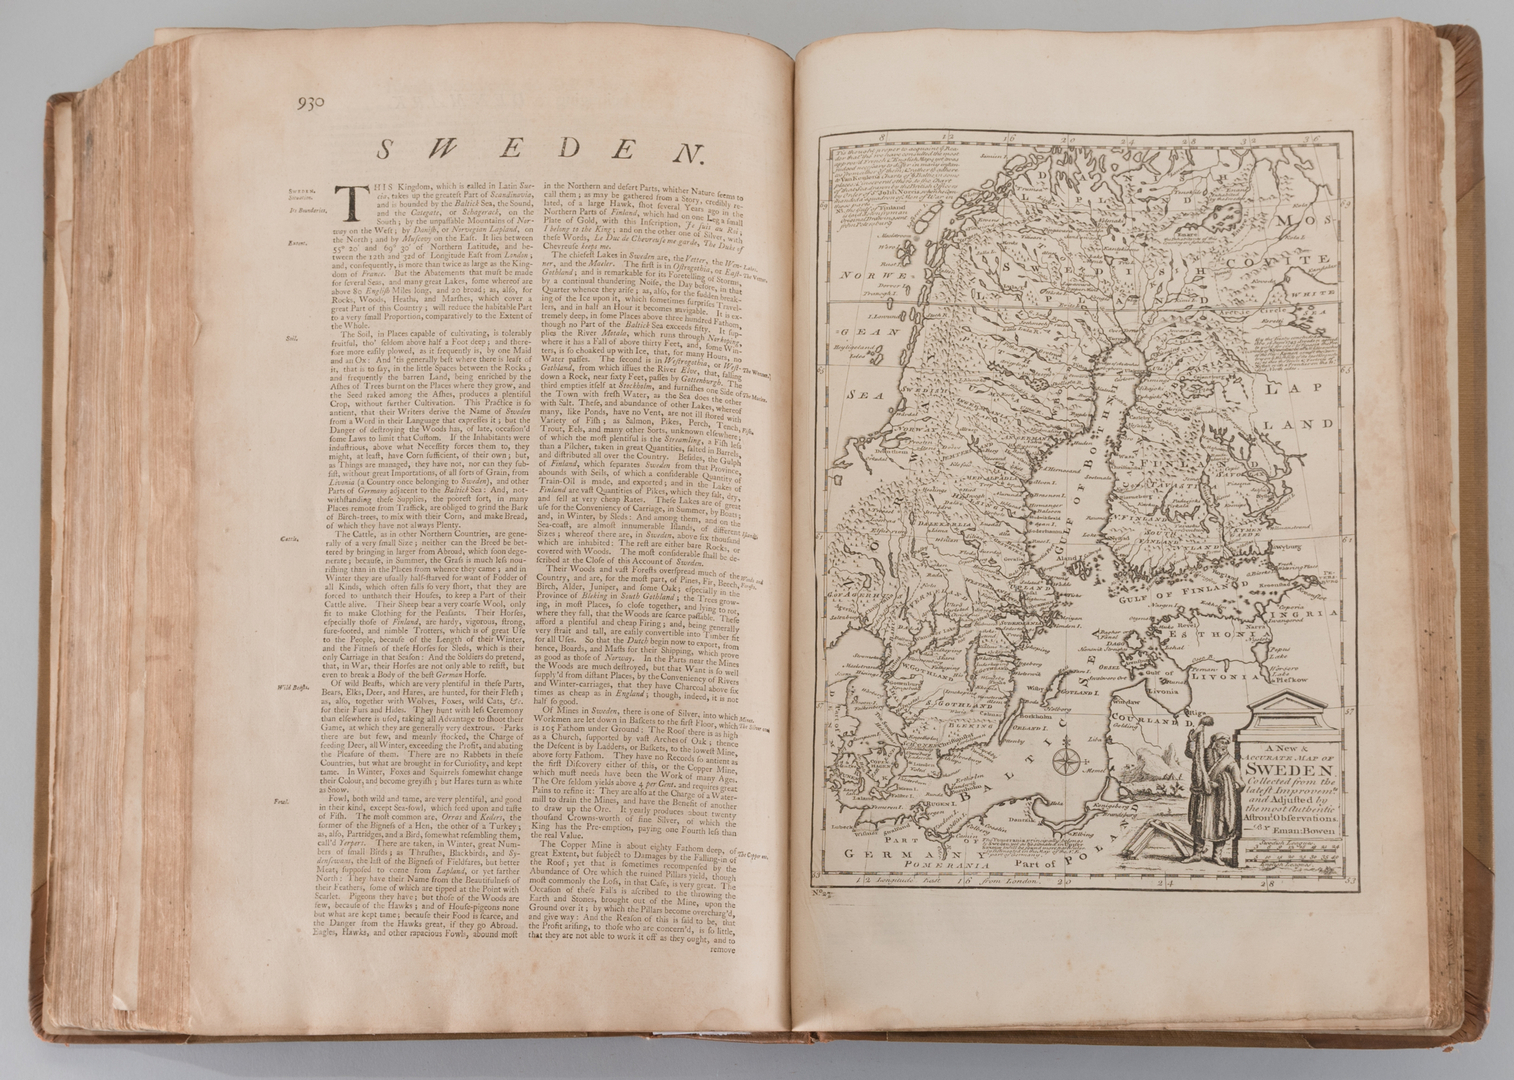 Lot 548 A Complete System Of Geography Vol I Bowen 1747